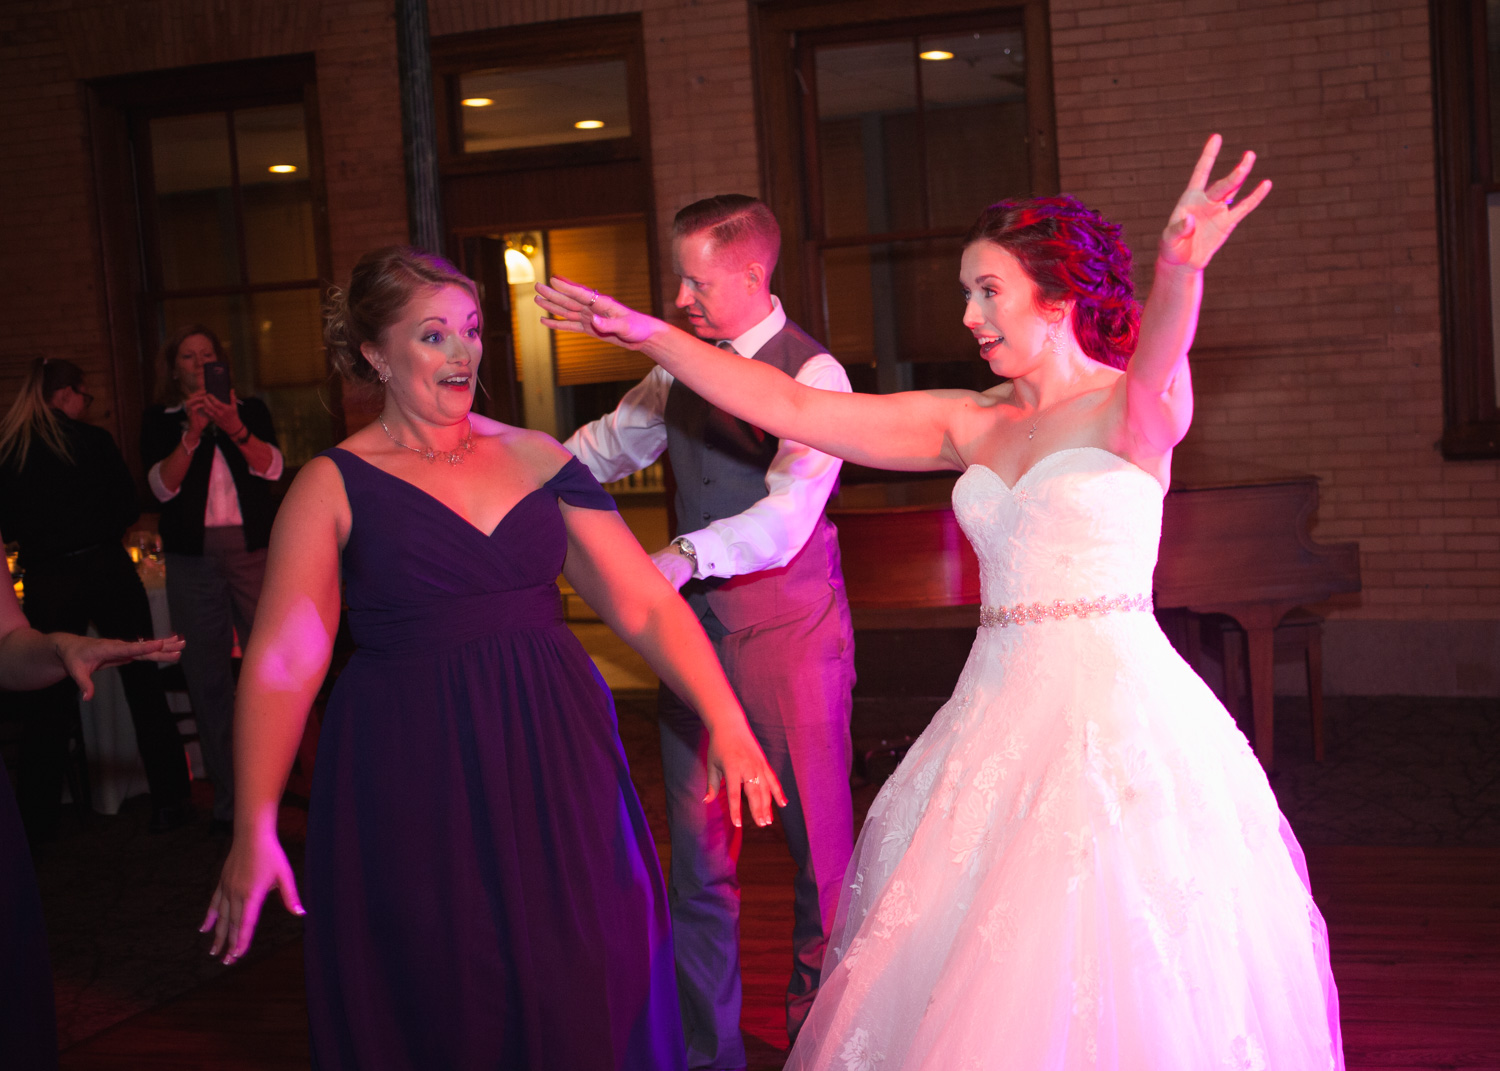 Bride in white wedding gown dances with her bridesmaid during the wedding reception at Union Station Northampton.